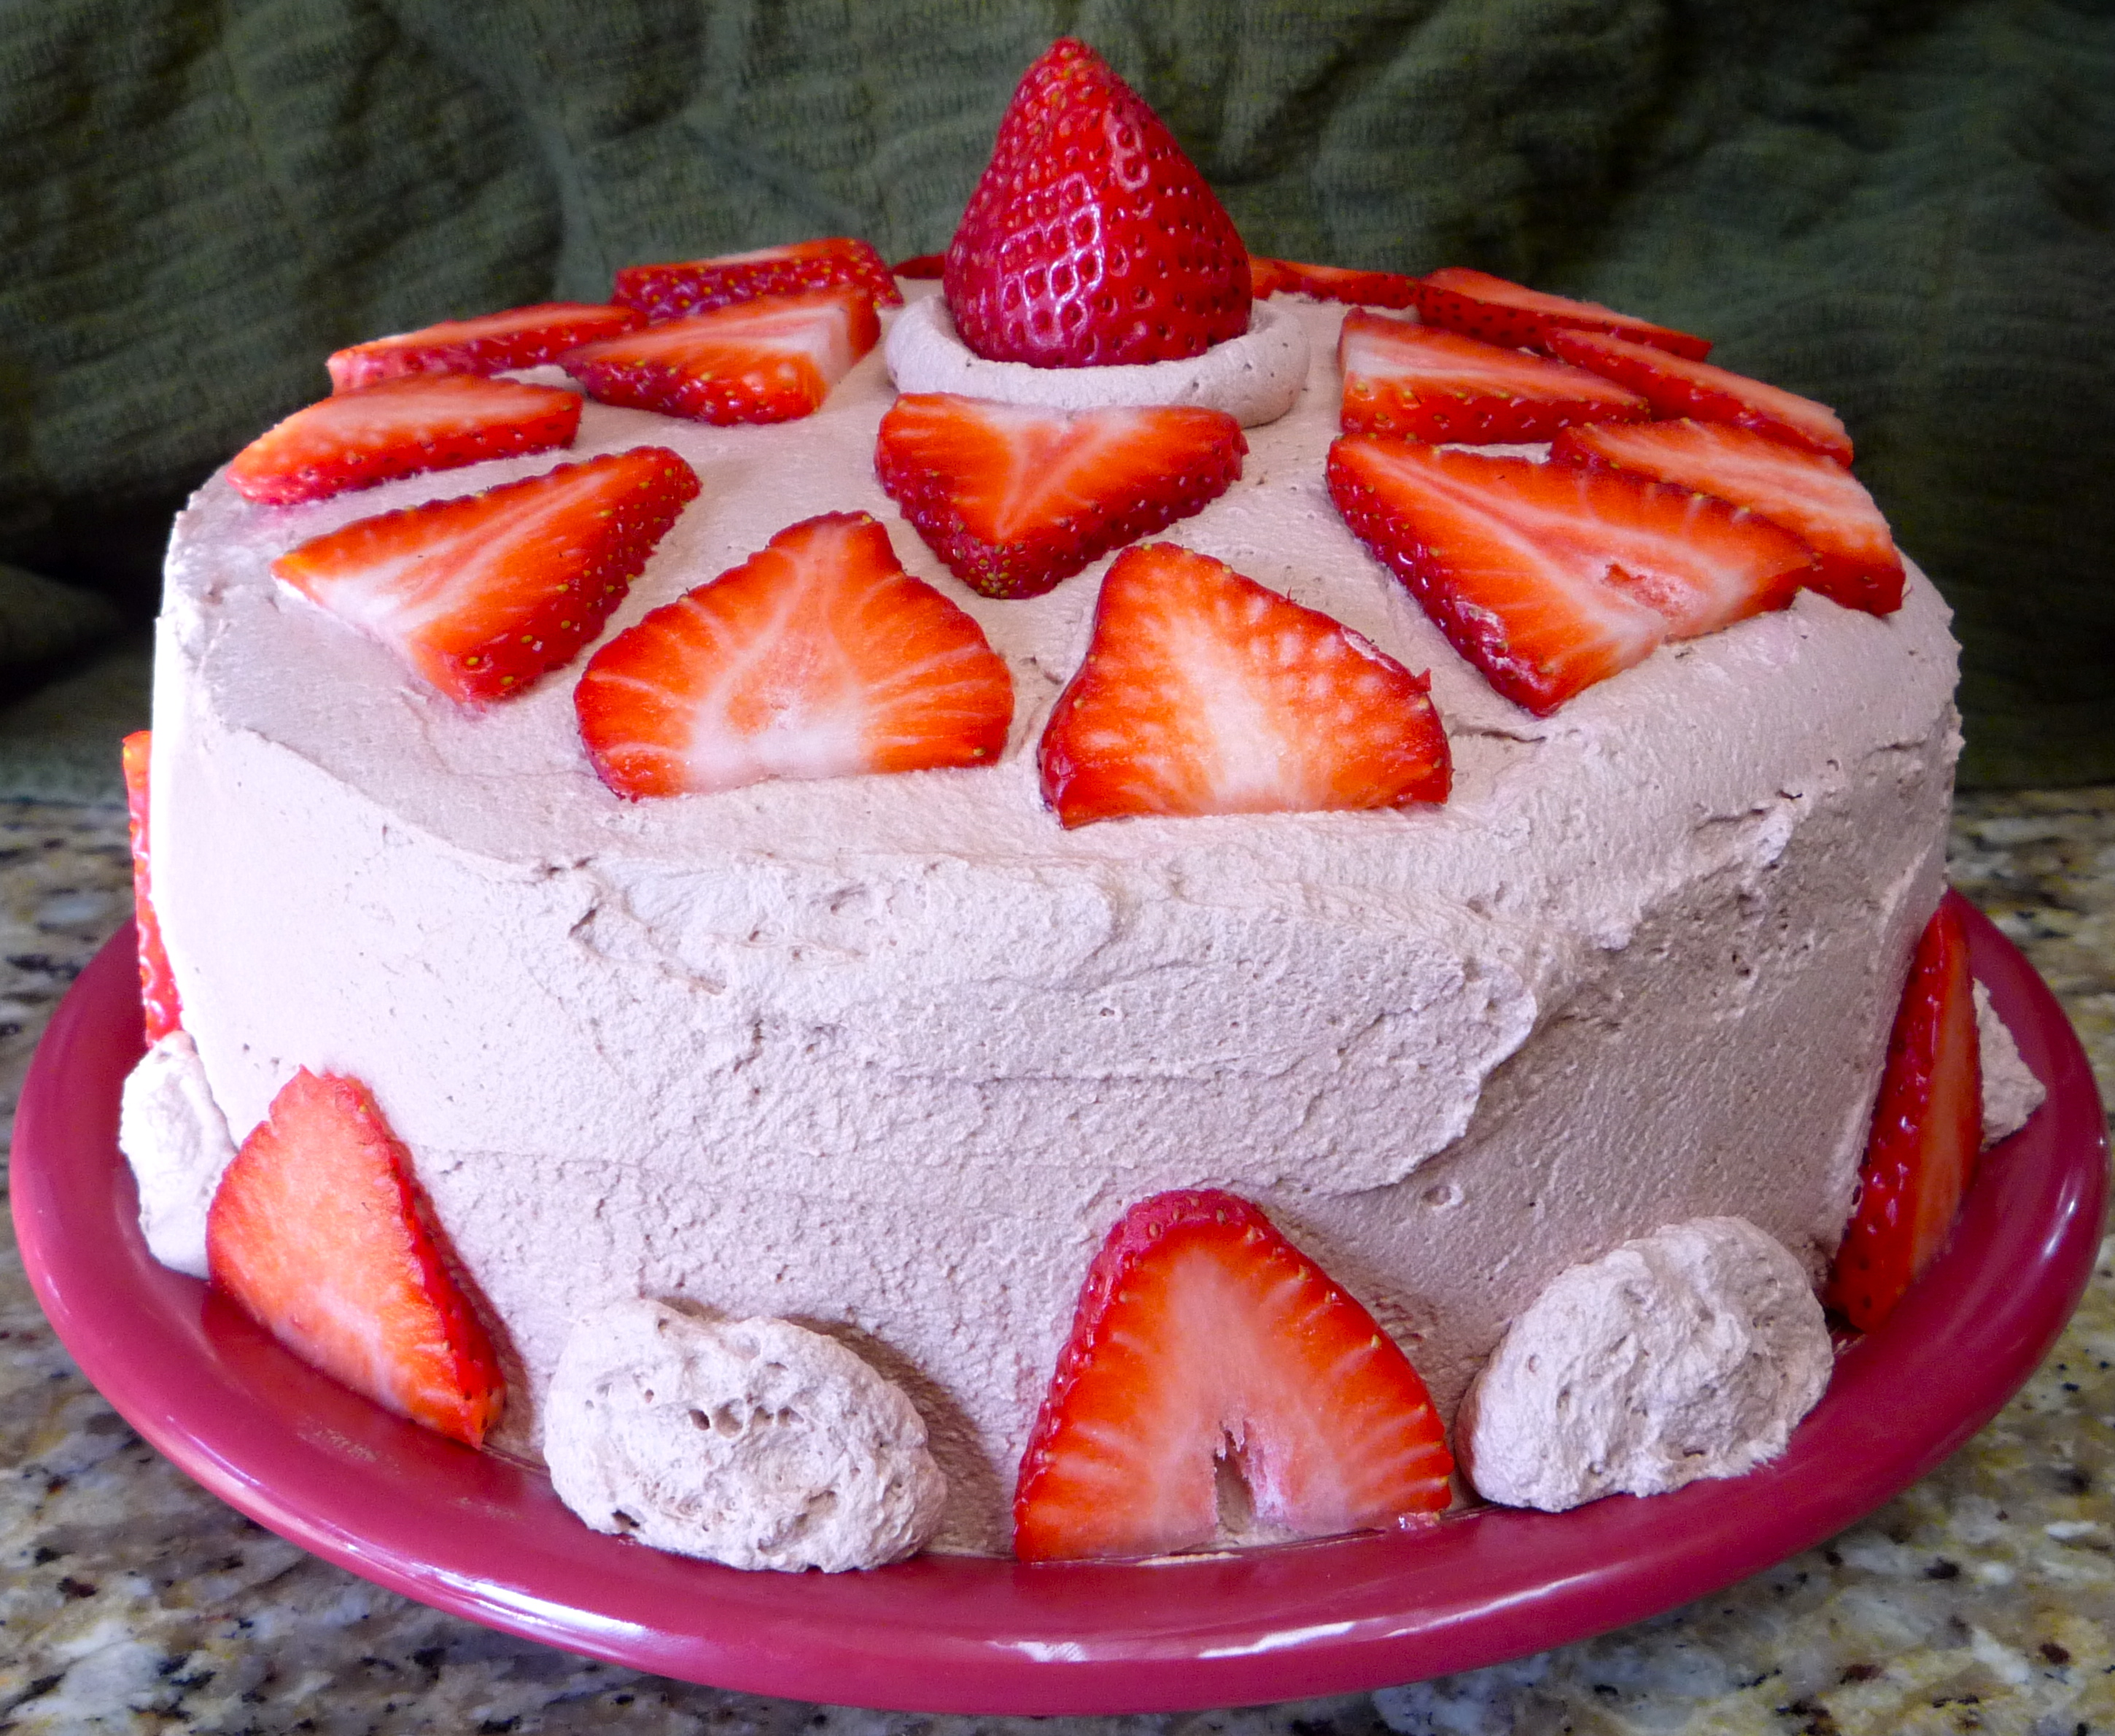 Cake With Chocolate Whipped Cream Frosting : Chocolate Love: Chocolate Cake with Strawberries and ...